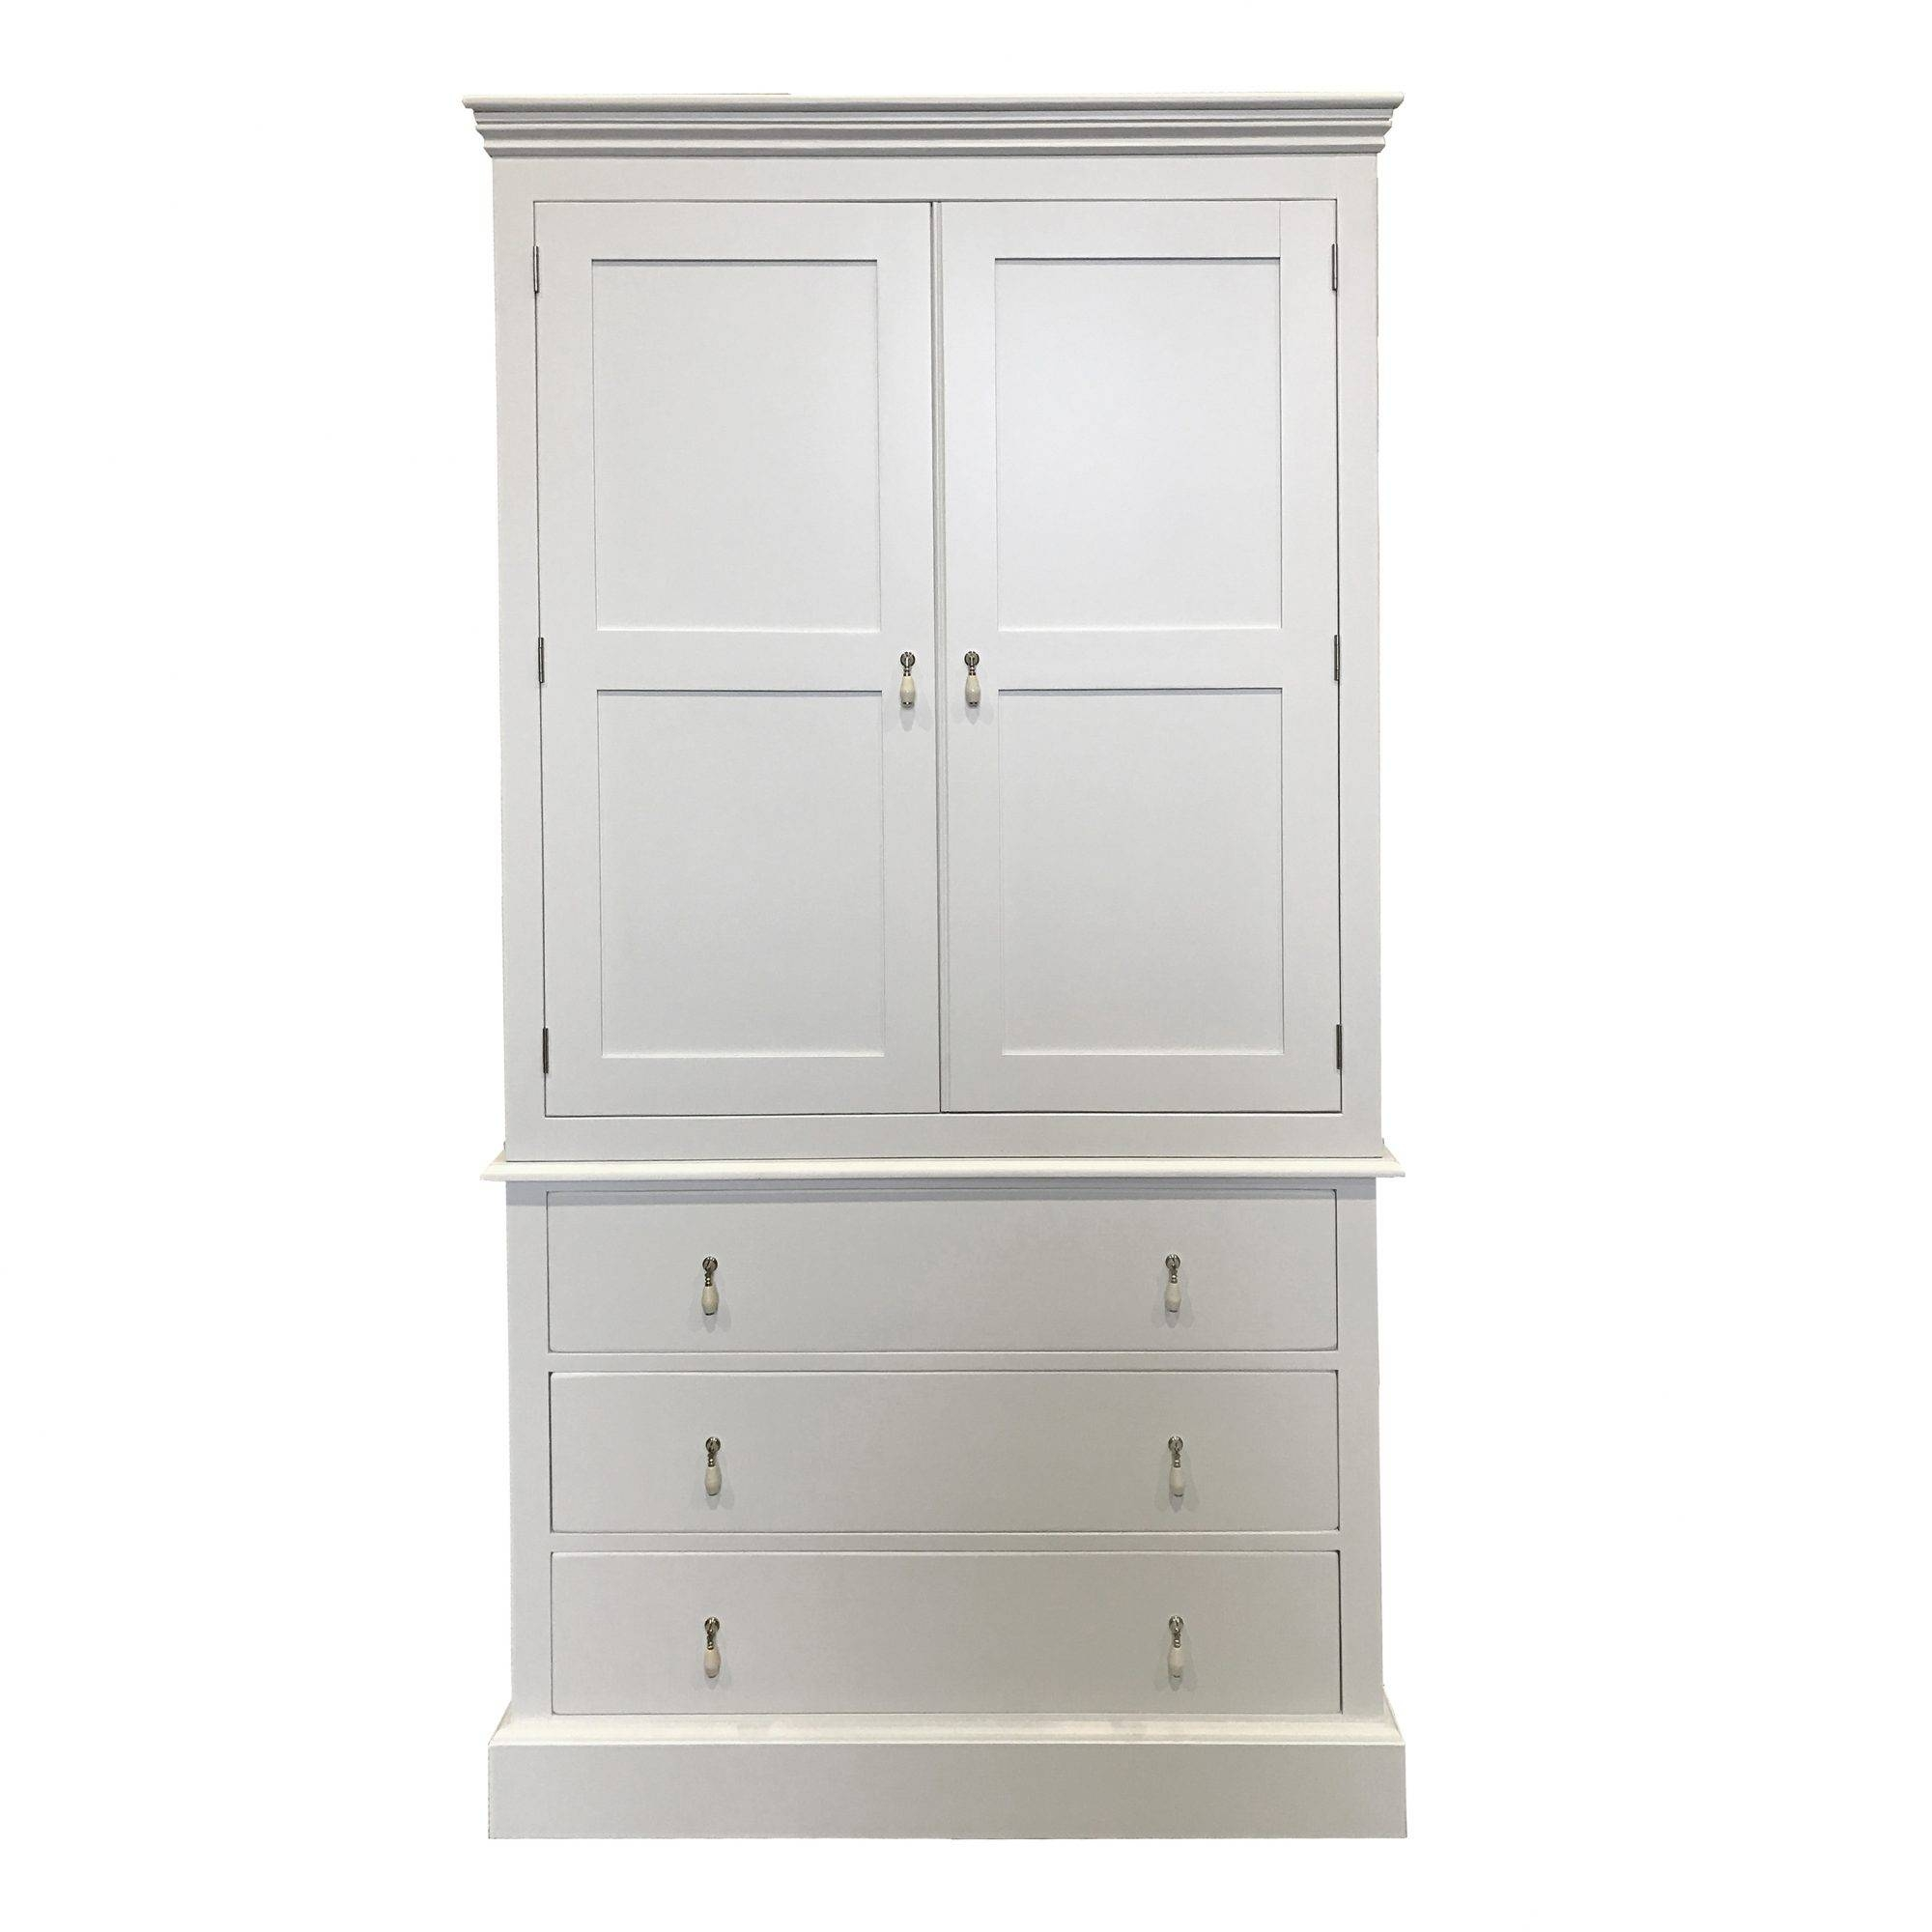 Wardrobes - Bespoke Wooden In Any F & B Colour, Glass Wardrobe within Wardrobes Chest Of Drawers Combination (Image 14 of 15)